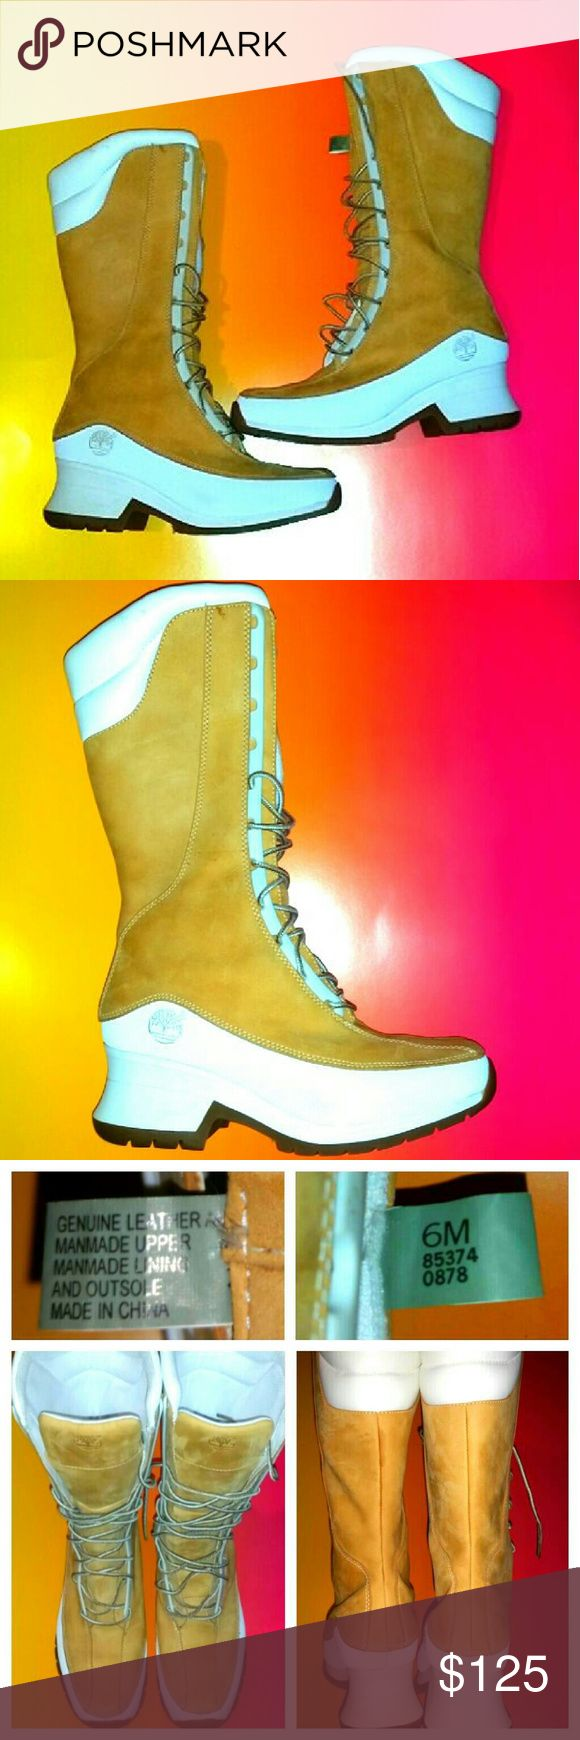 Timberland🎆SALE!!🎆 NWOB Timberland Lase Up Boots, white and tan, NWOB, Size 6, Beautiful✔Quality Leather✔Never worn✔ LOVE IT but Unfortunately a little too small for me. Shoes Lace Up Boots